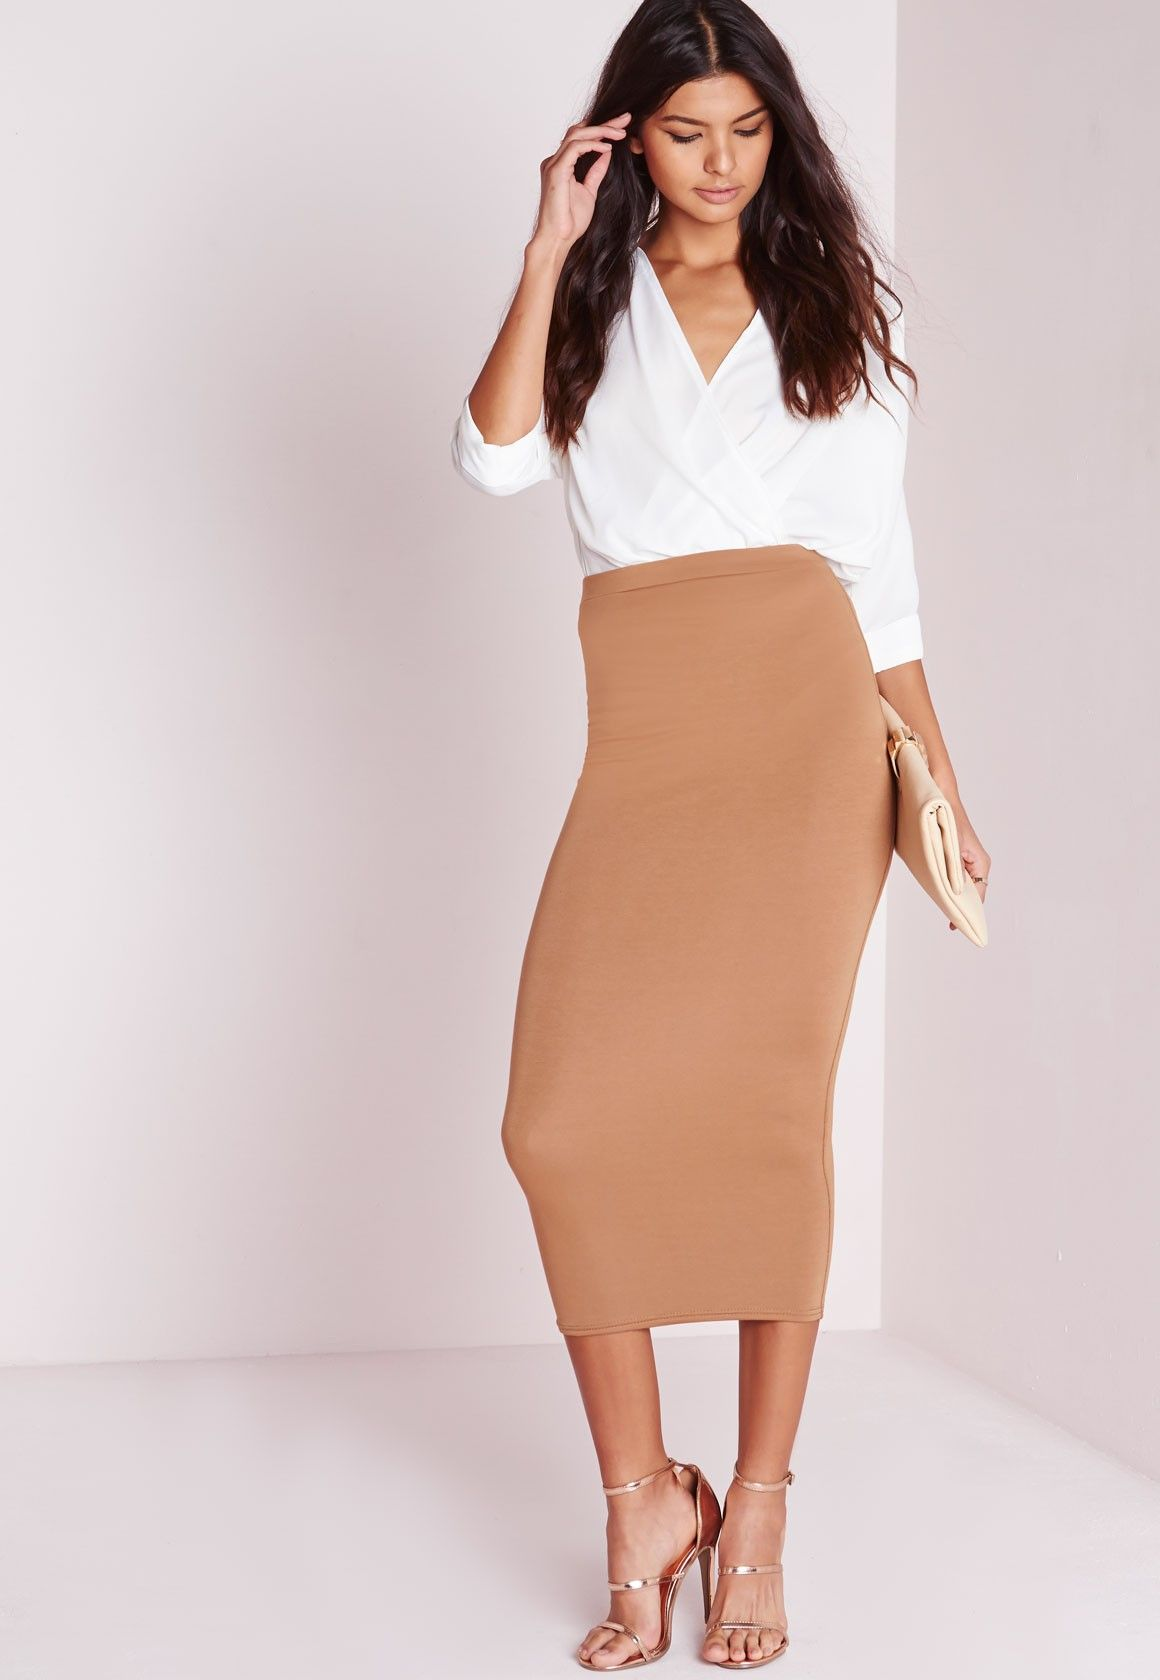 013976548de Missguided - Longline Jersey Midi Skirt Camel what about dressing for  working 9 to 5